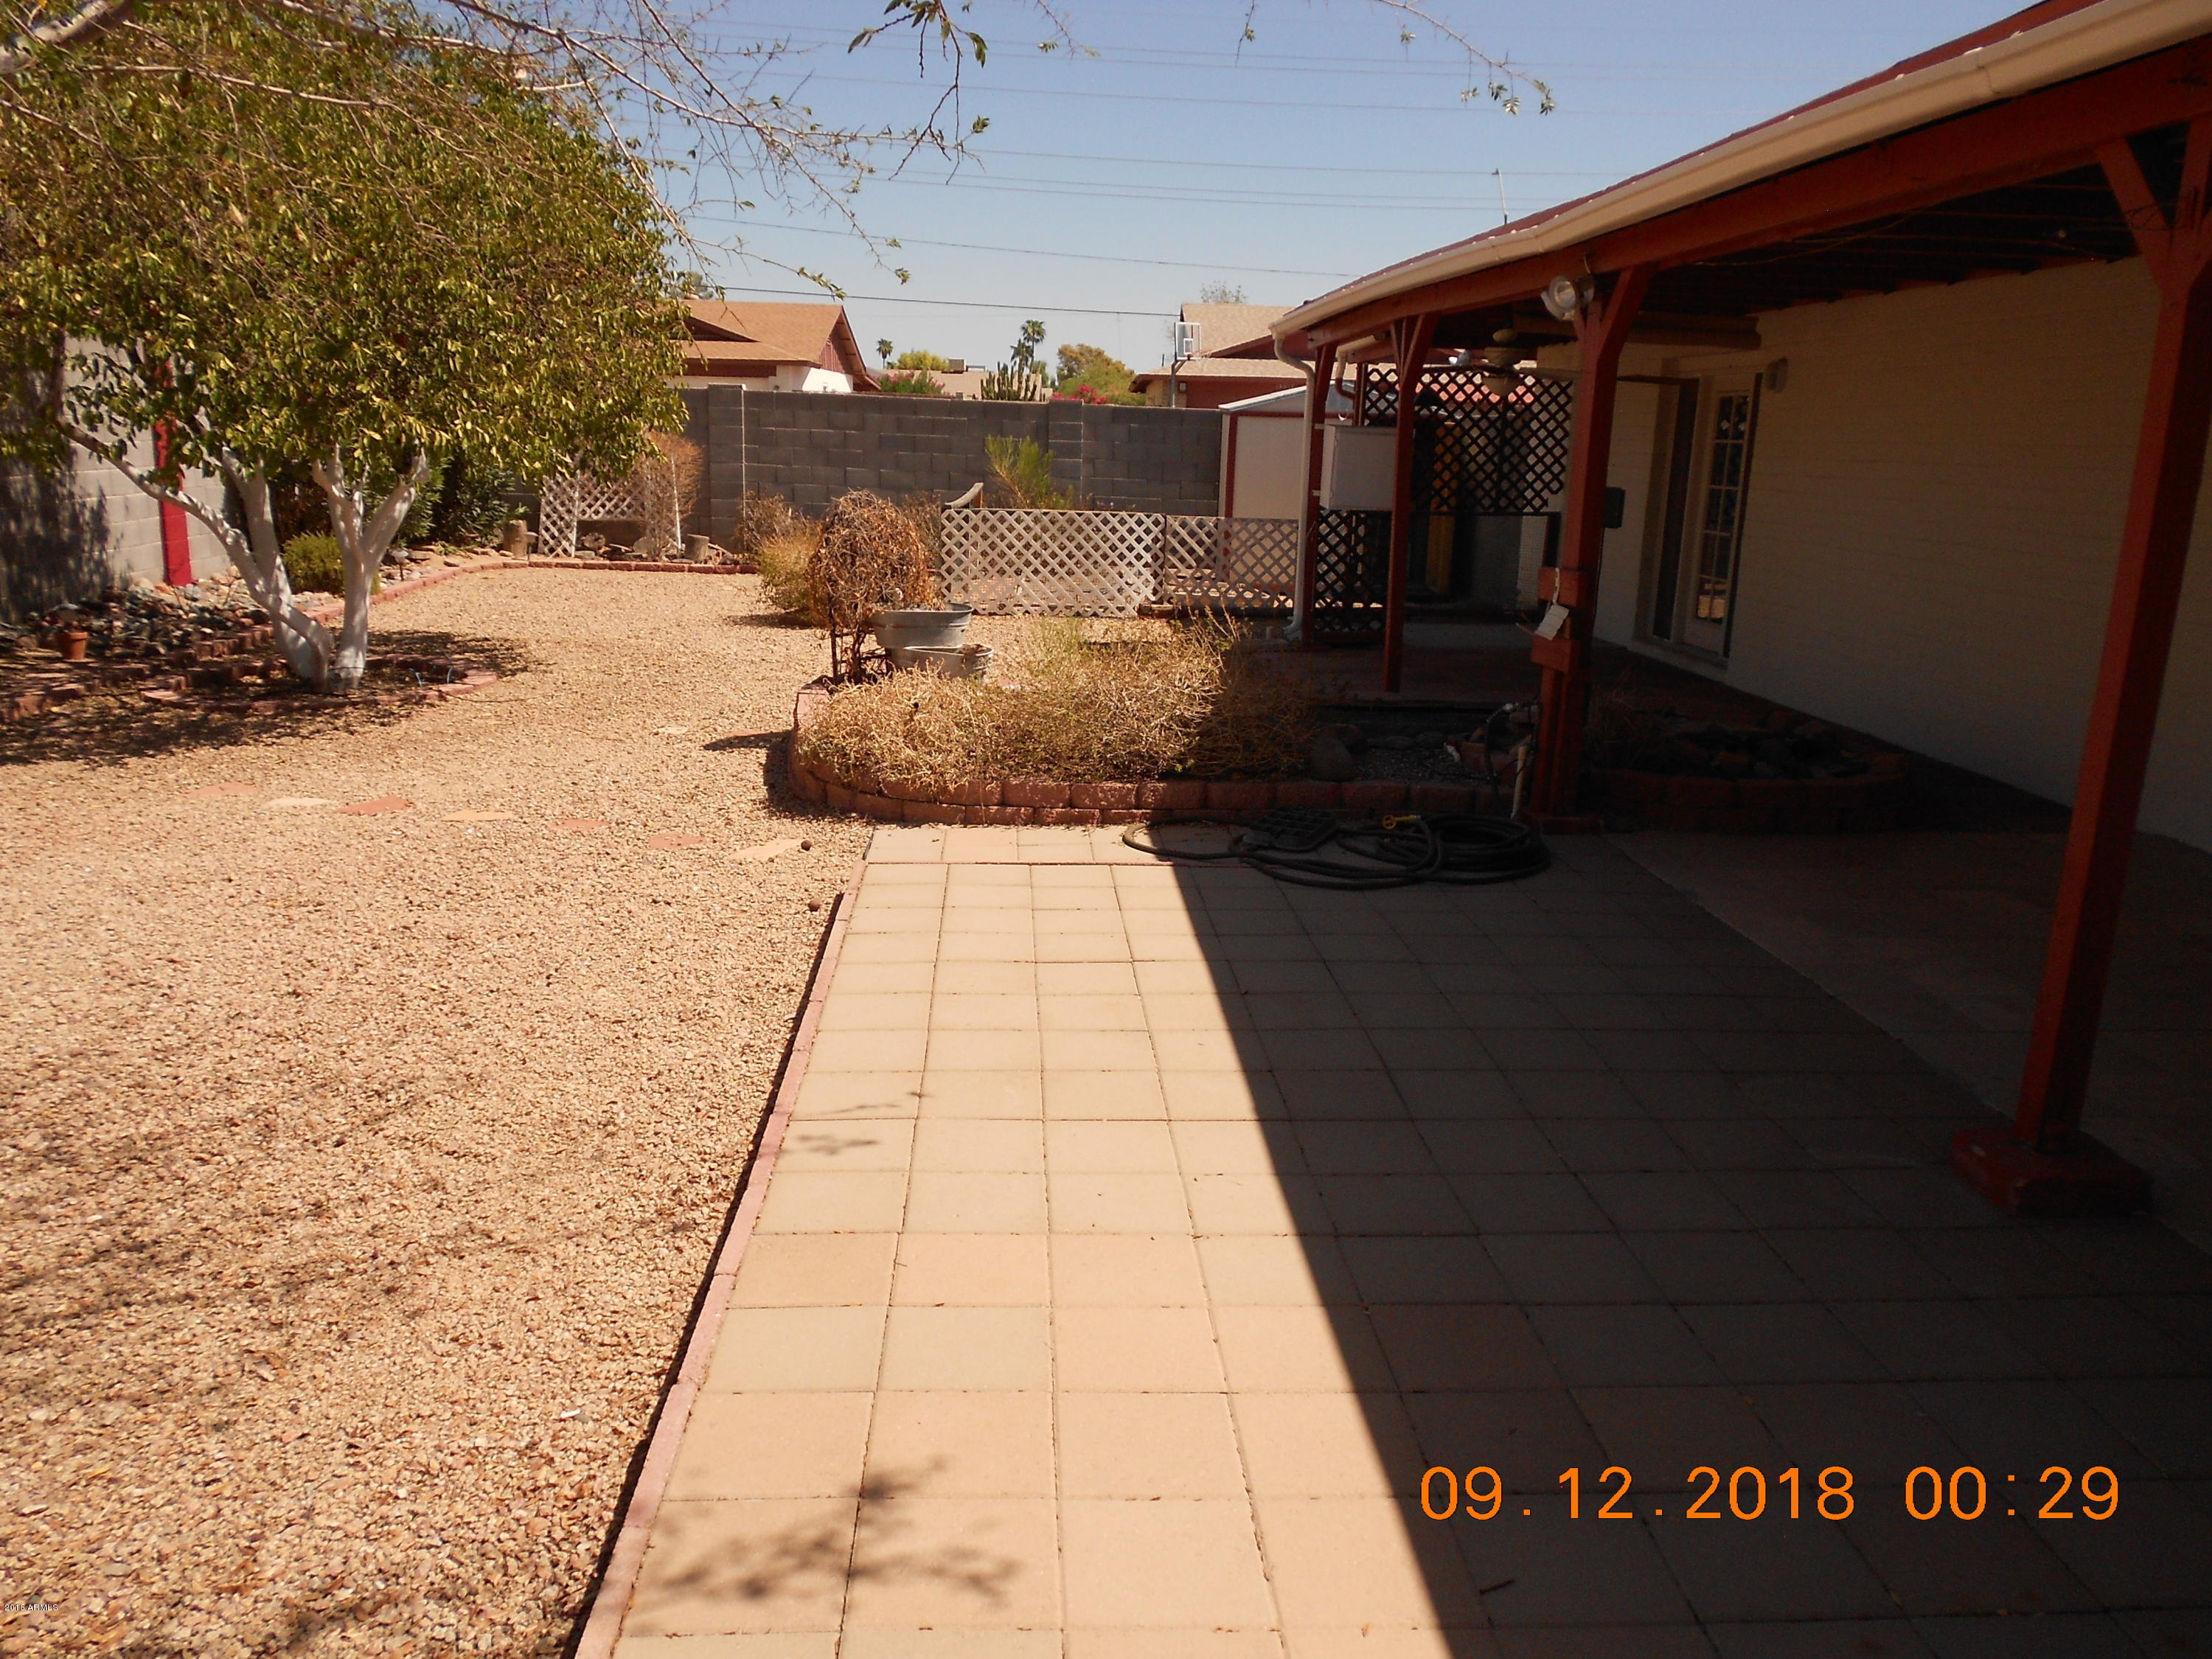 MLS 5822869 3522 W MICHELLE Drive, Glendale, AZ 85308 Glendale AZ REO Bank Owned Foreclosure